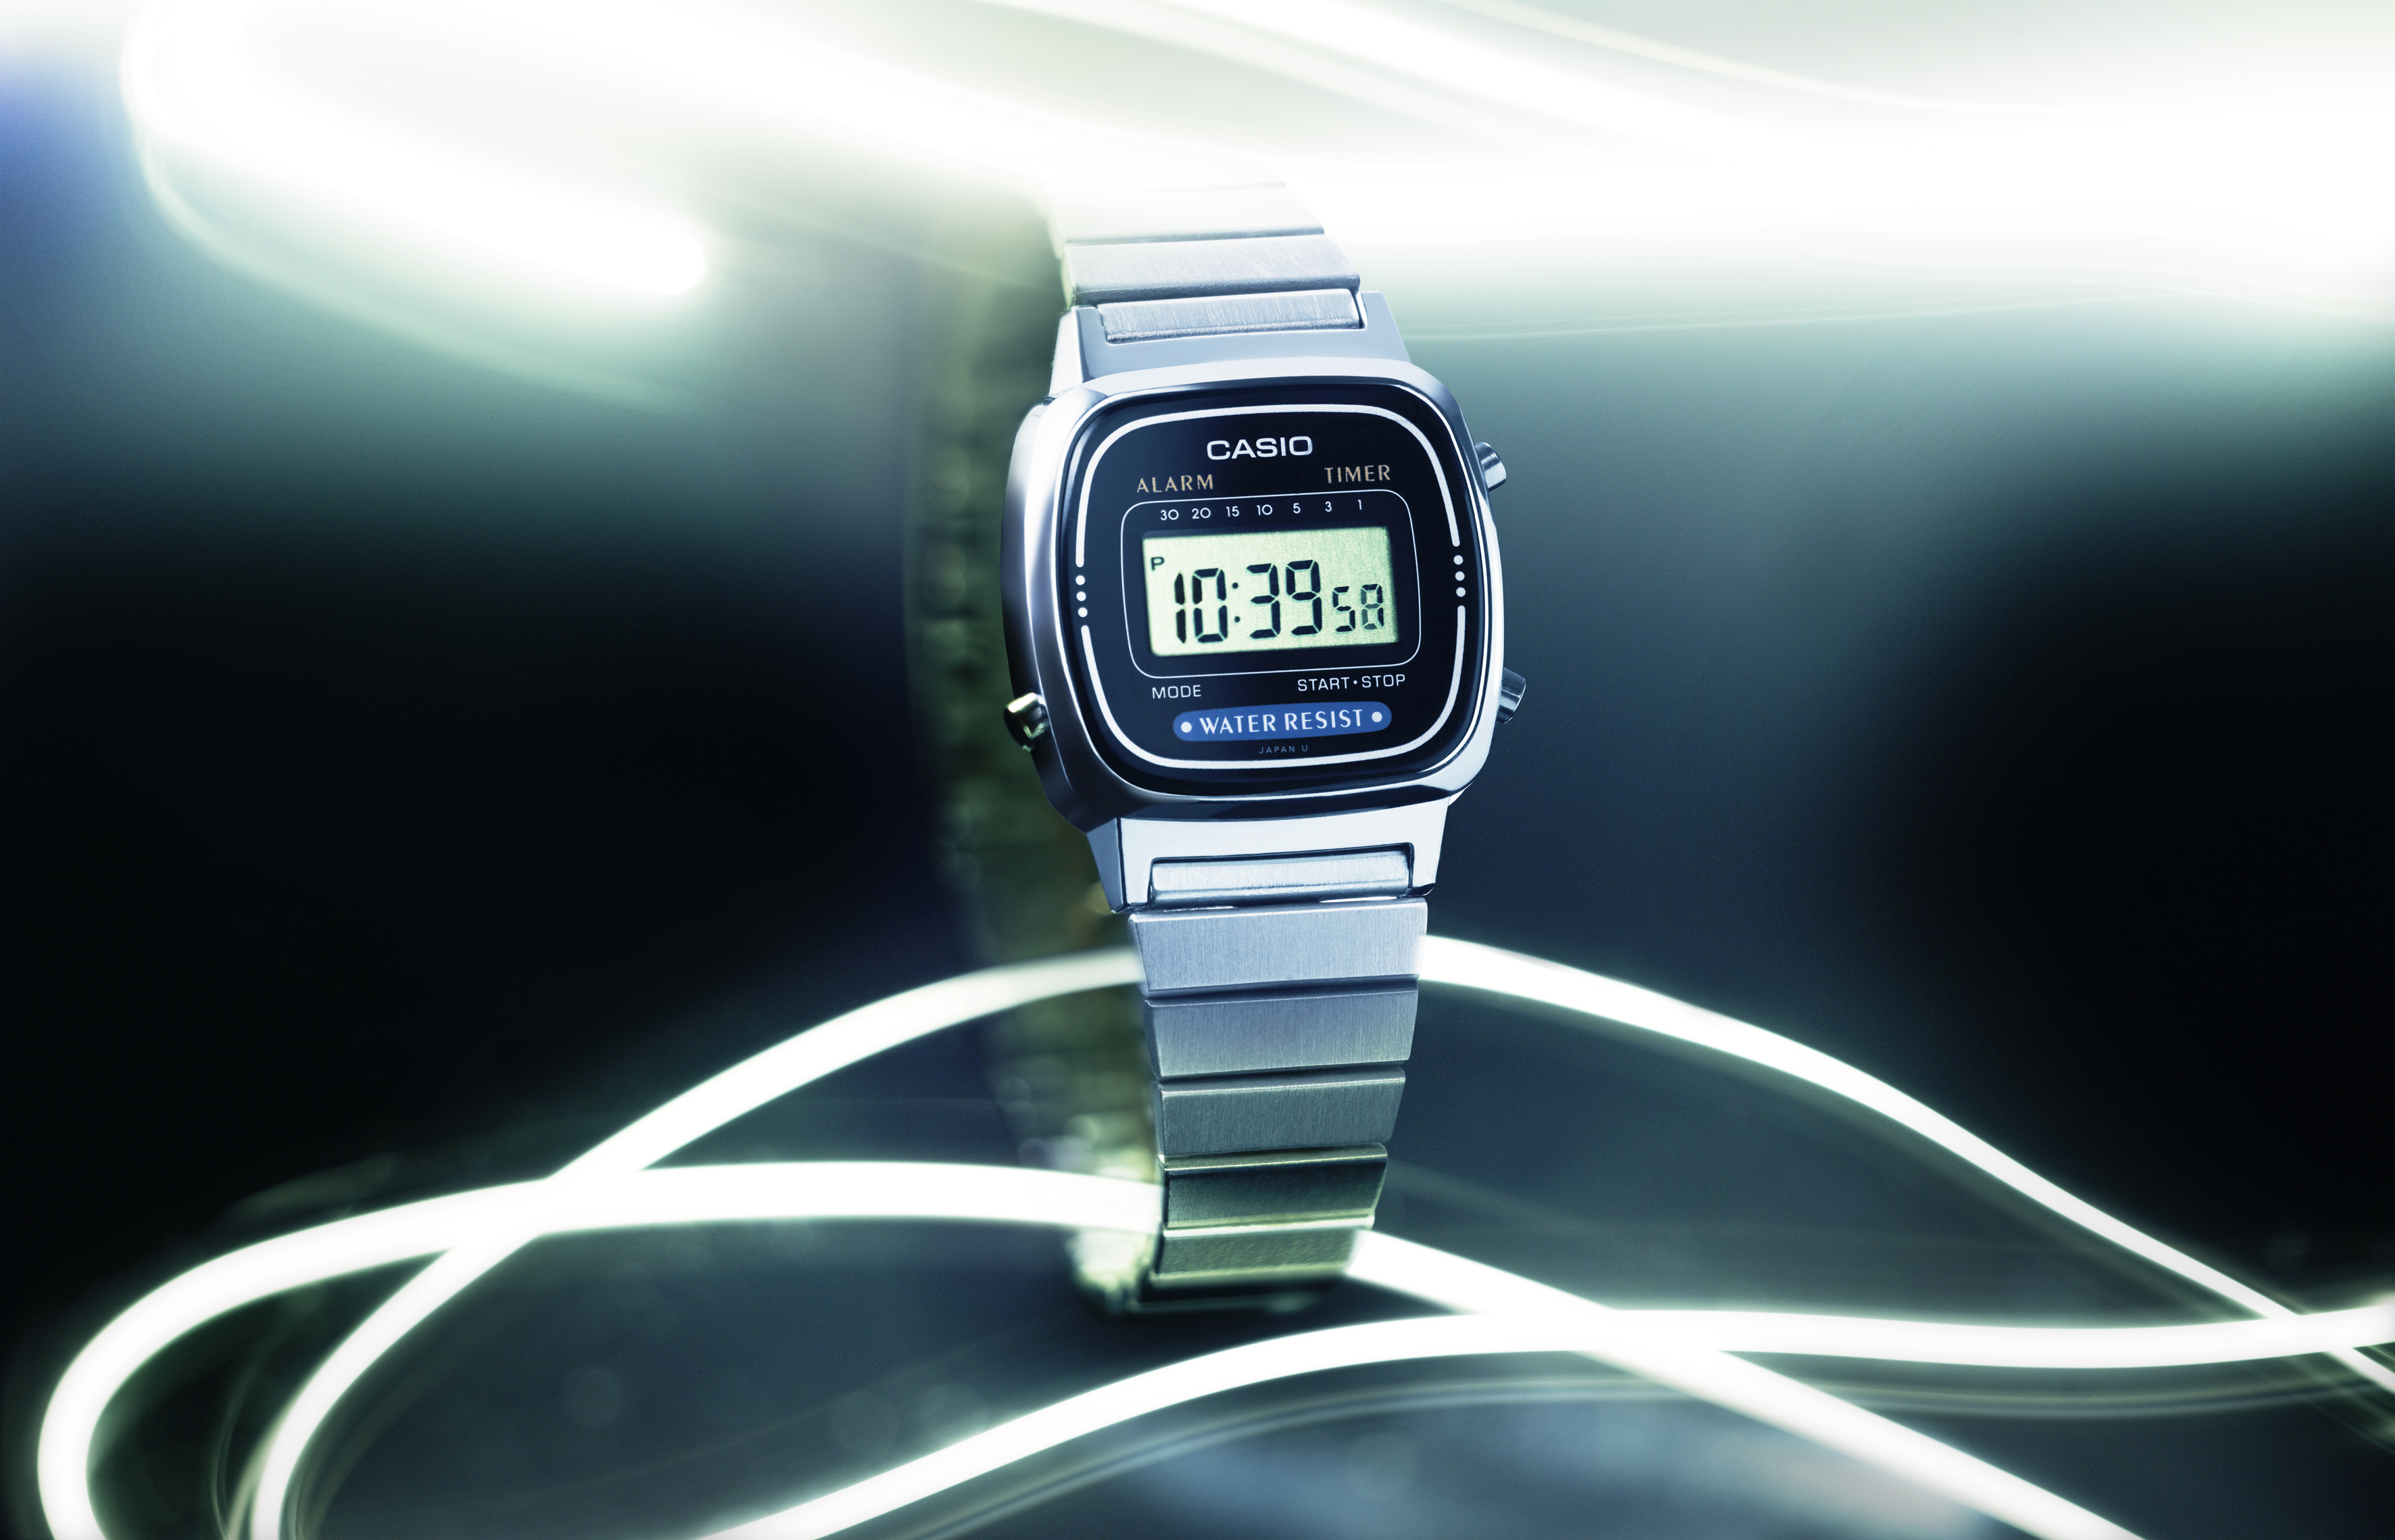 CASIO light